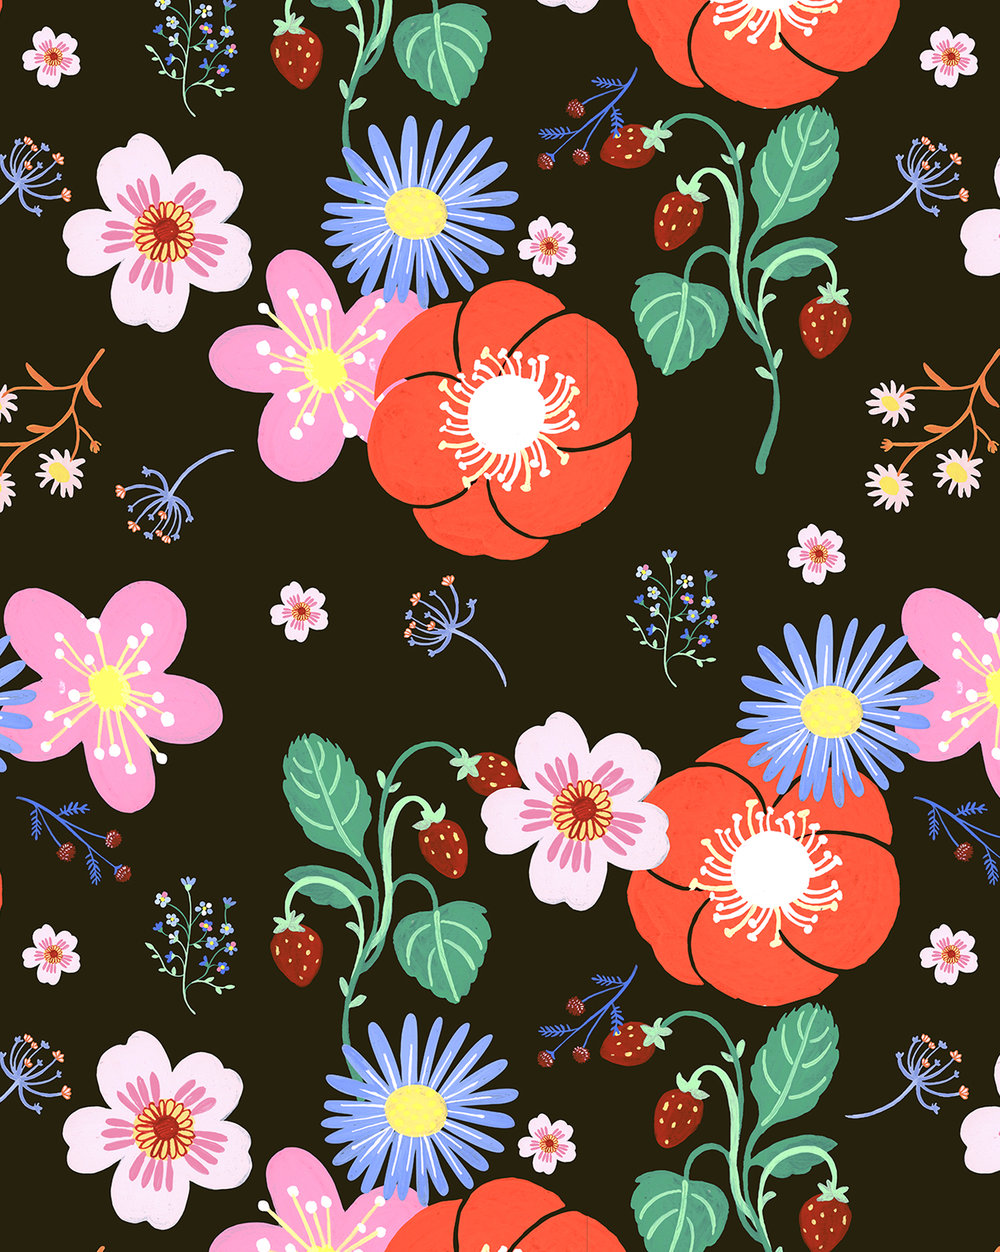 Pomme Chan_Meadow_Pattern_Flower.jpg